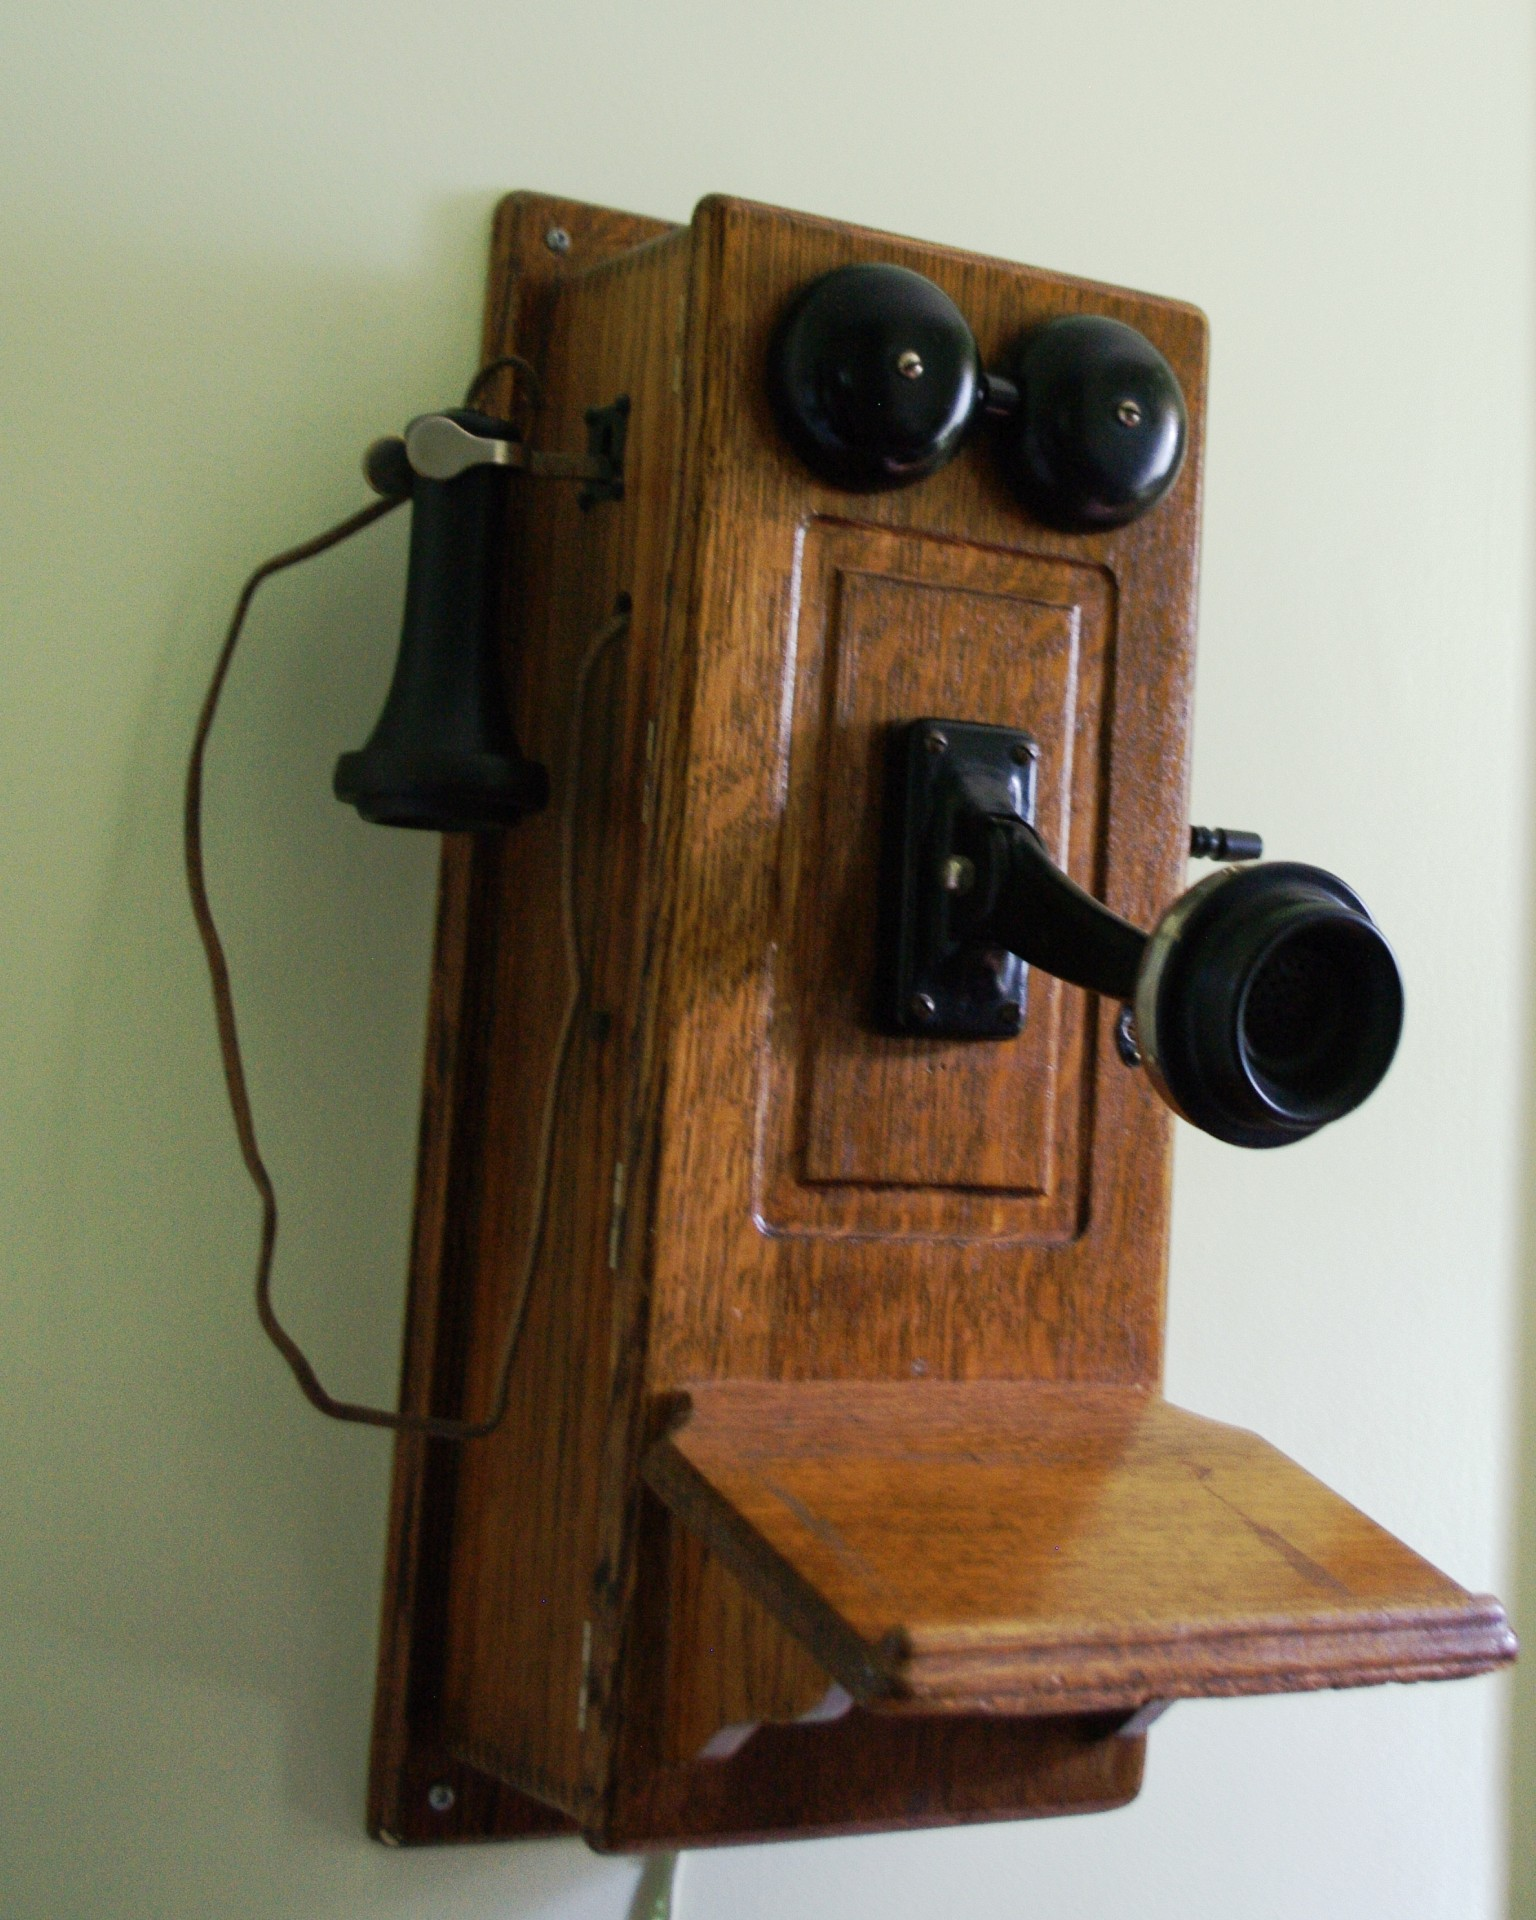 Telephone, Communications, National Telephone Day